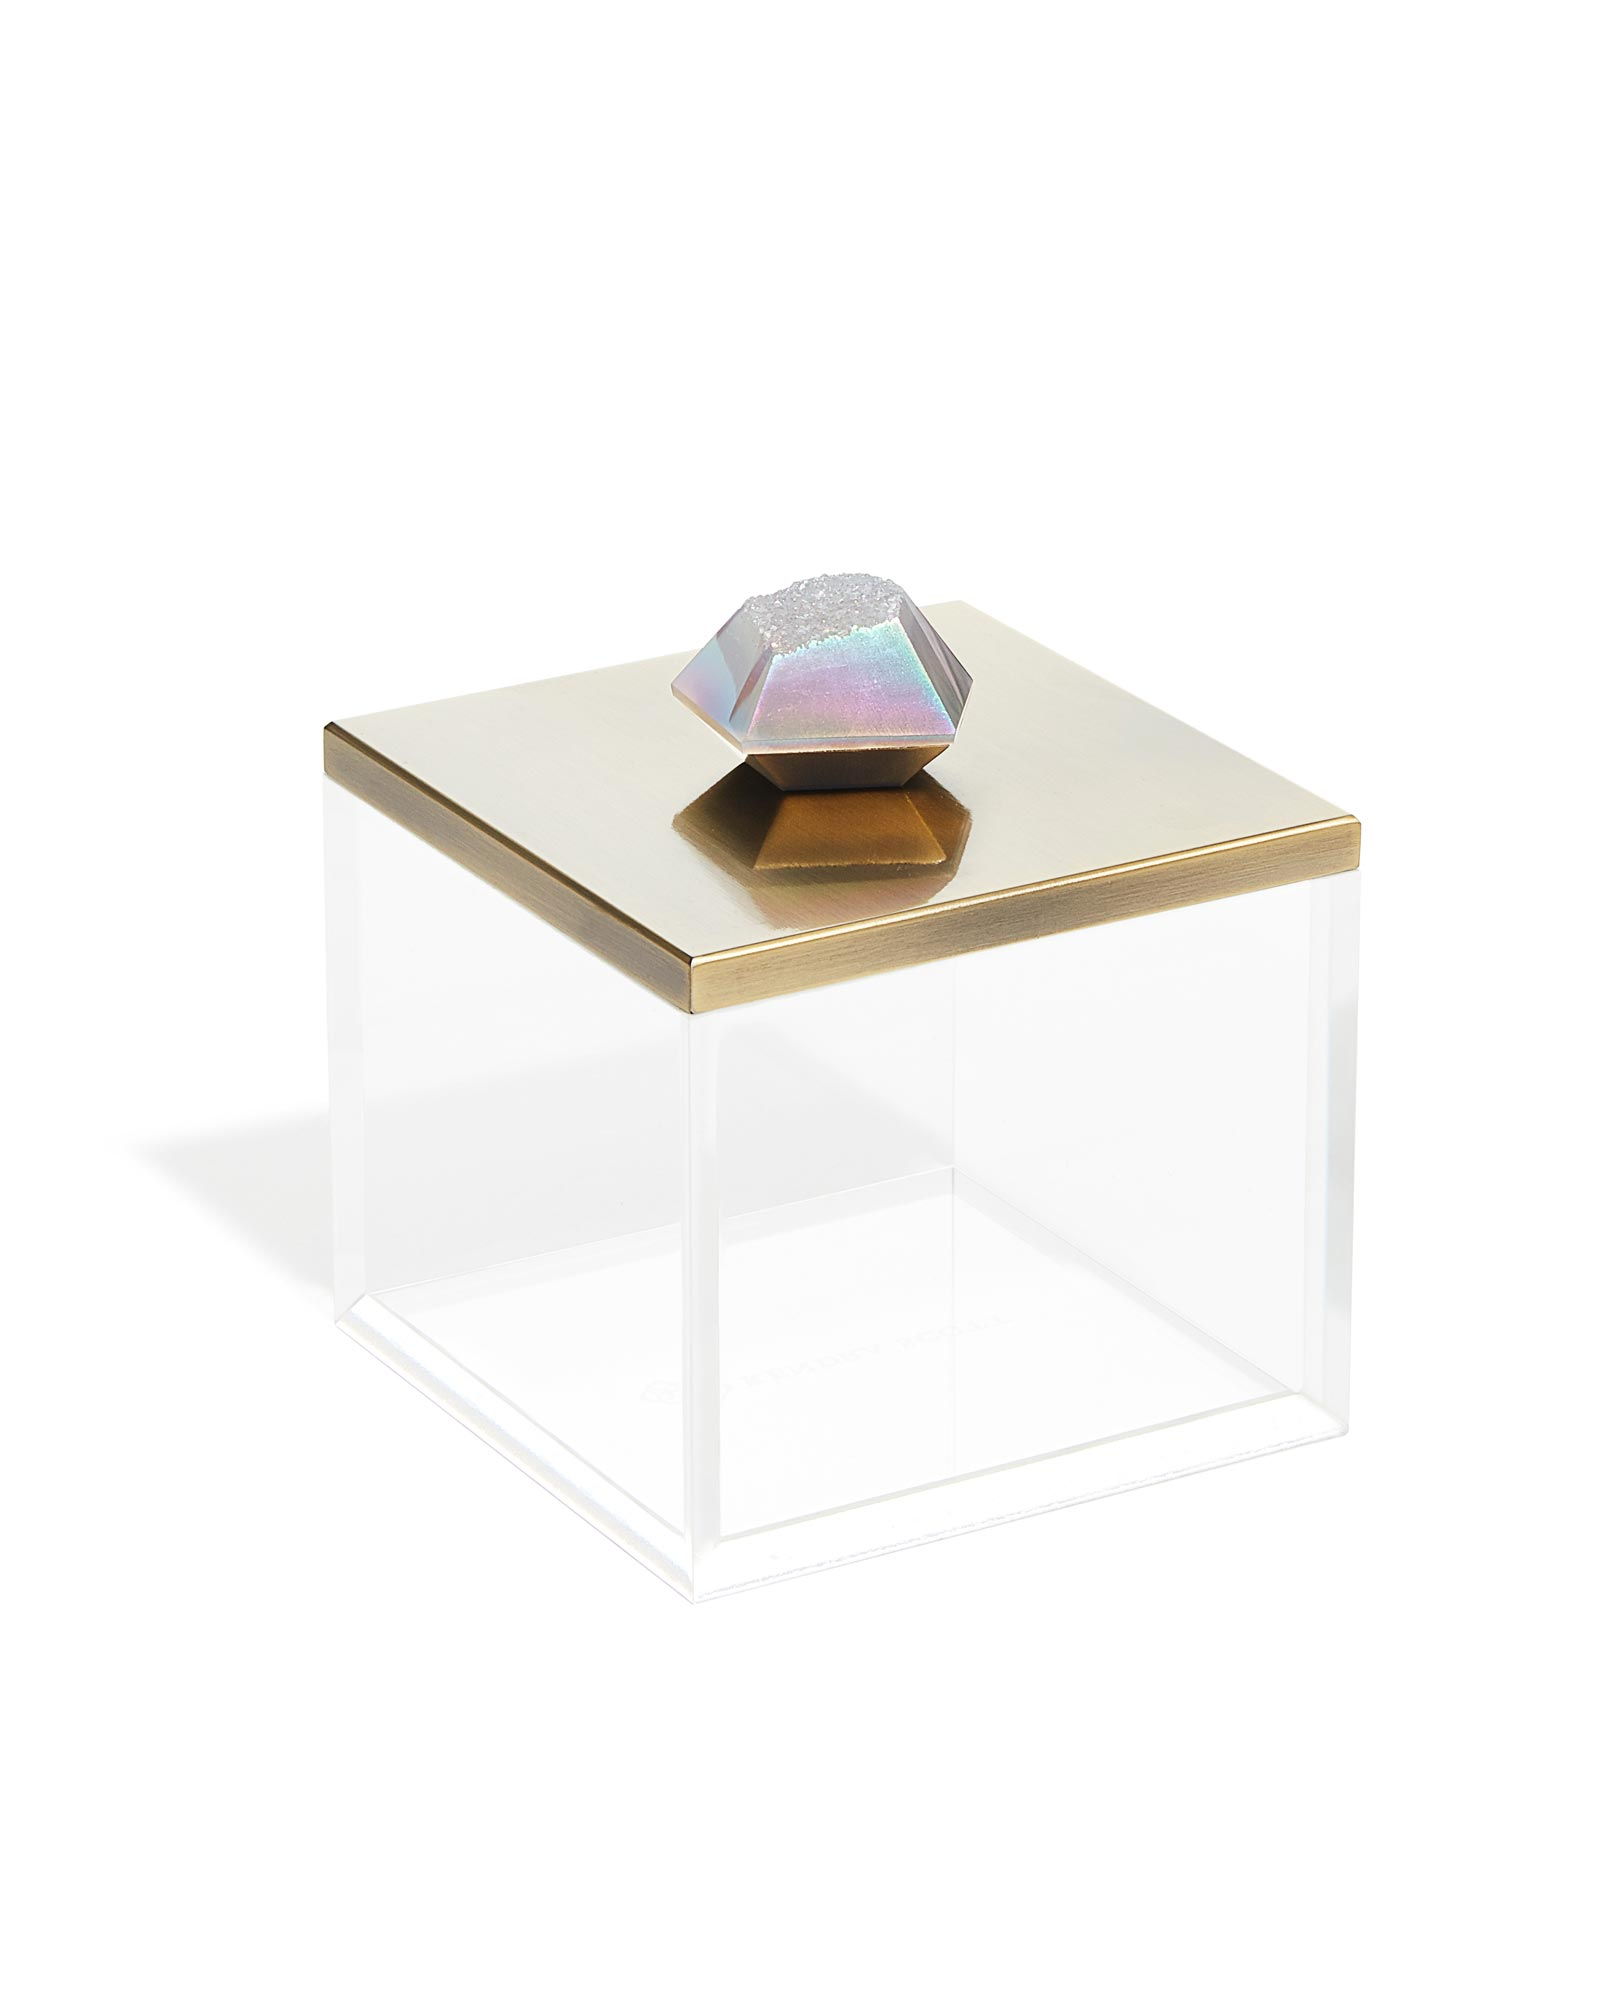 Square Acrylic Box in Iridescent Drusy